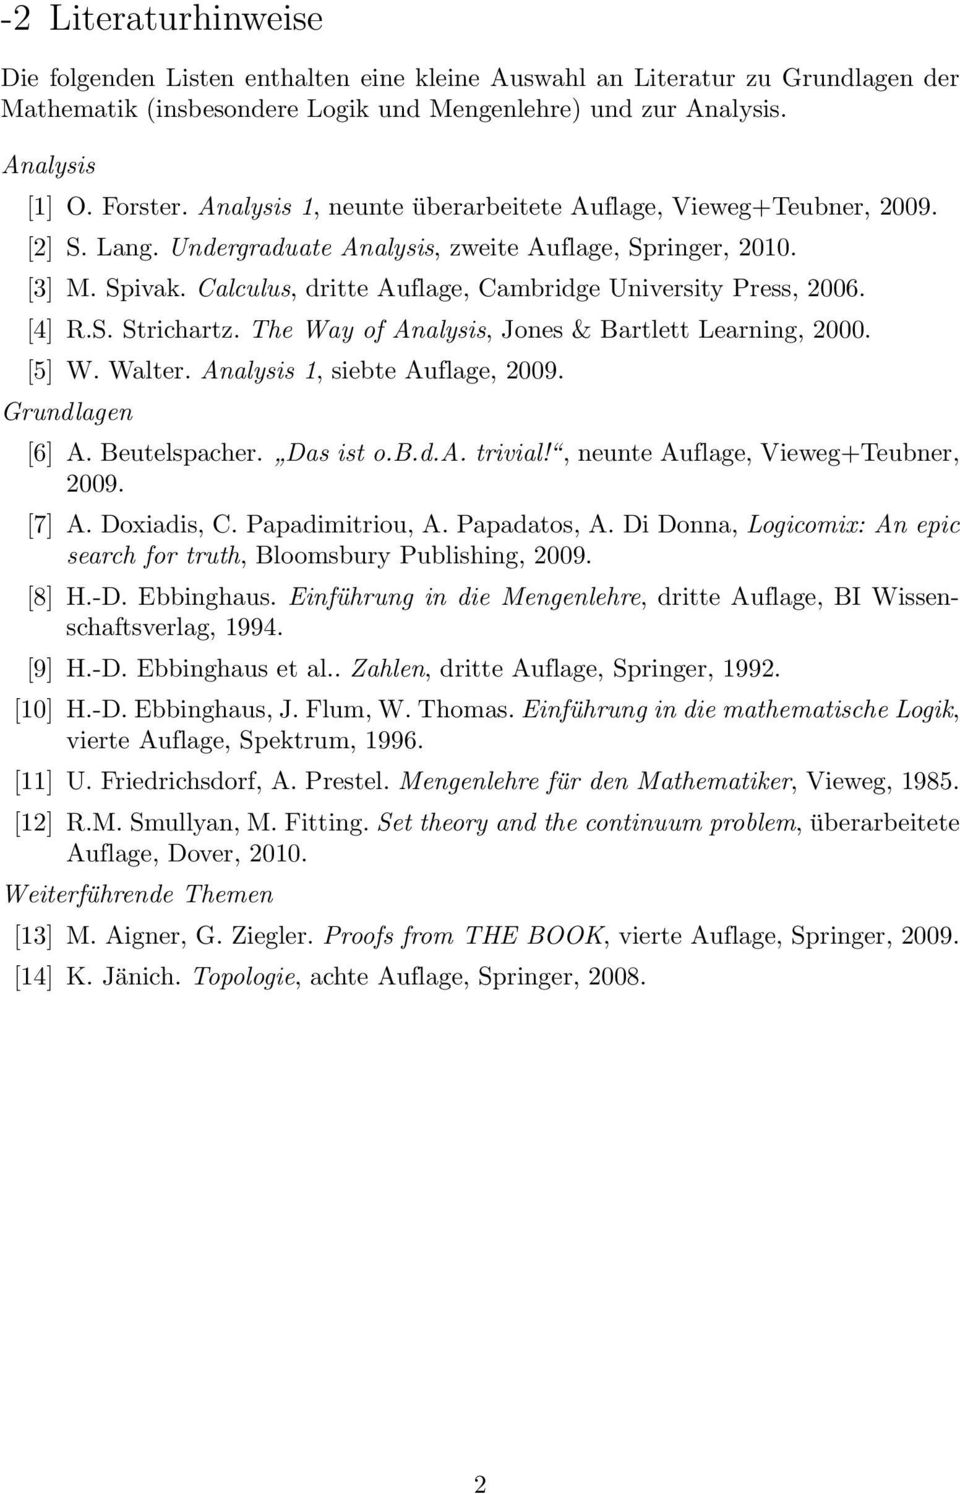 [4] R.S. Strichrtz. The Wy of Anlysis, Jones & Brtlett Lerning, 2000. [5] W. Wlter. Anlysis 1, siebte Auflge, 2009. Grundlgen [6] A. Beutelspcher. Ds ist o.b.d.a. trivil!